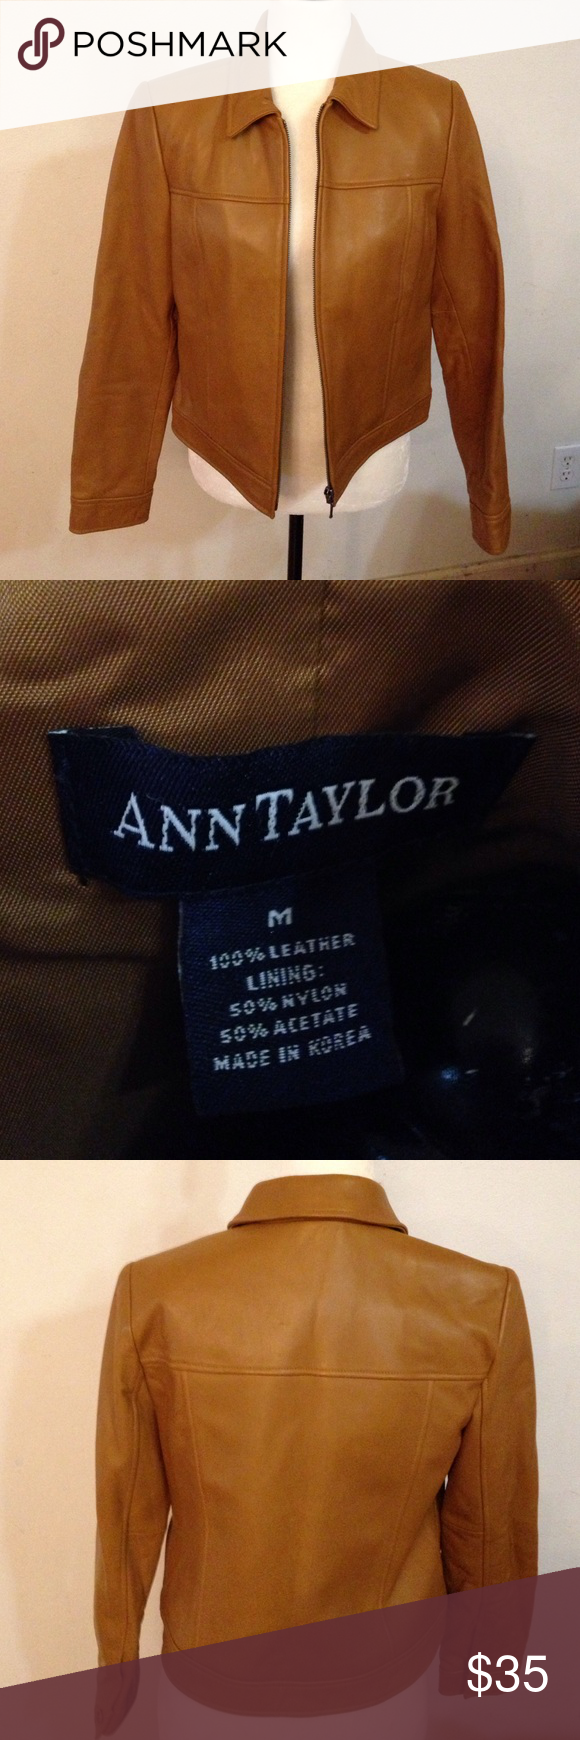 Ann taylor leather jacket Excellent good condition, no stains or flaws. As is Ann Taylor Jackets & Coats Jean Jackets